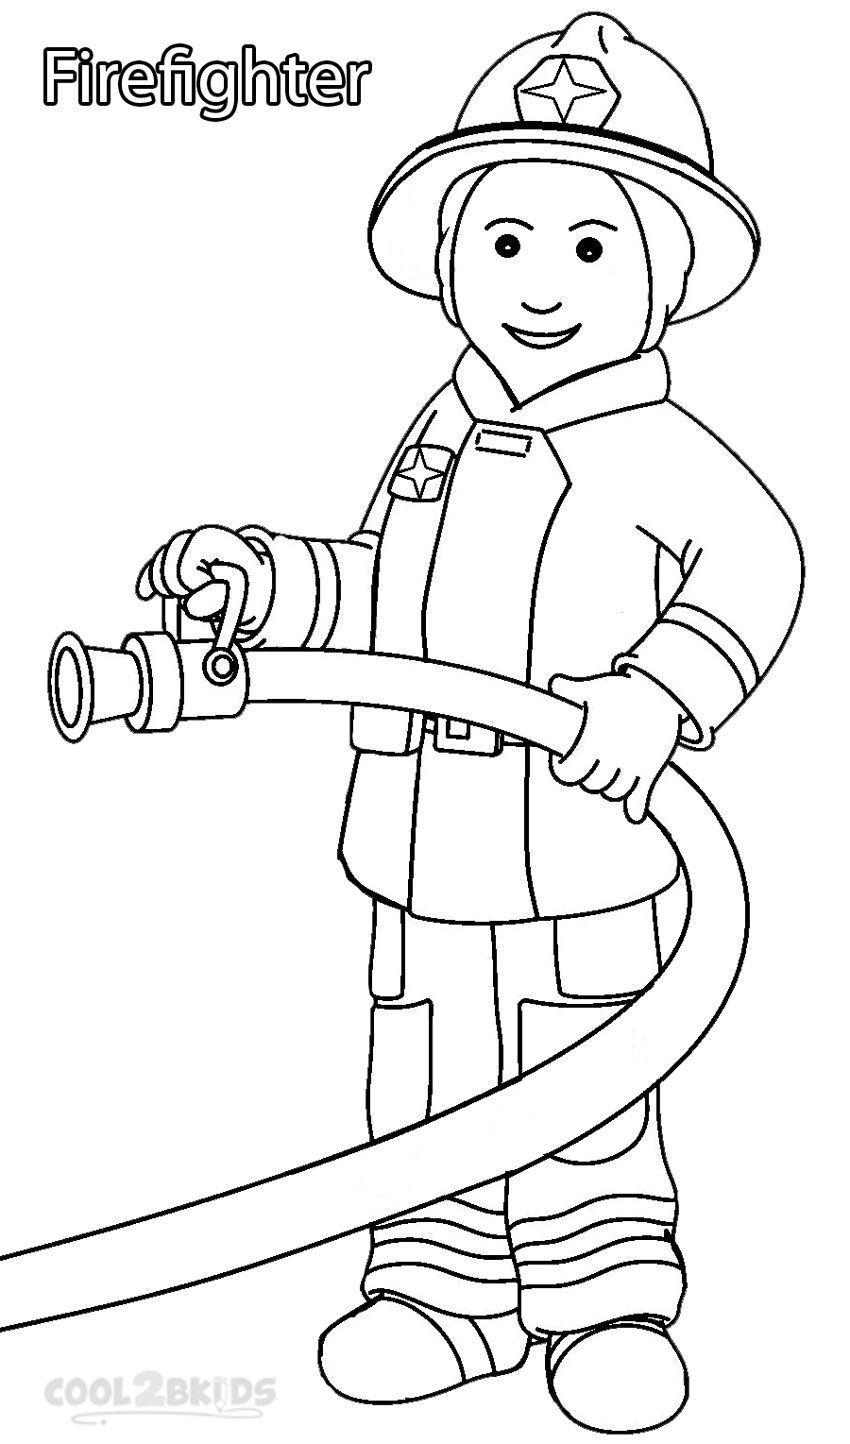 Printable Community Helper Coloring Pages For Kids Cool2bkids Community Helpers Preschool Preschool Coloring Pages Community Helpers Pictures